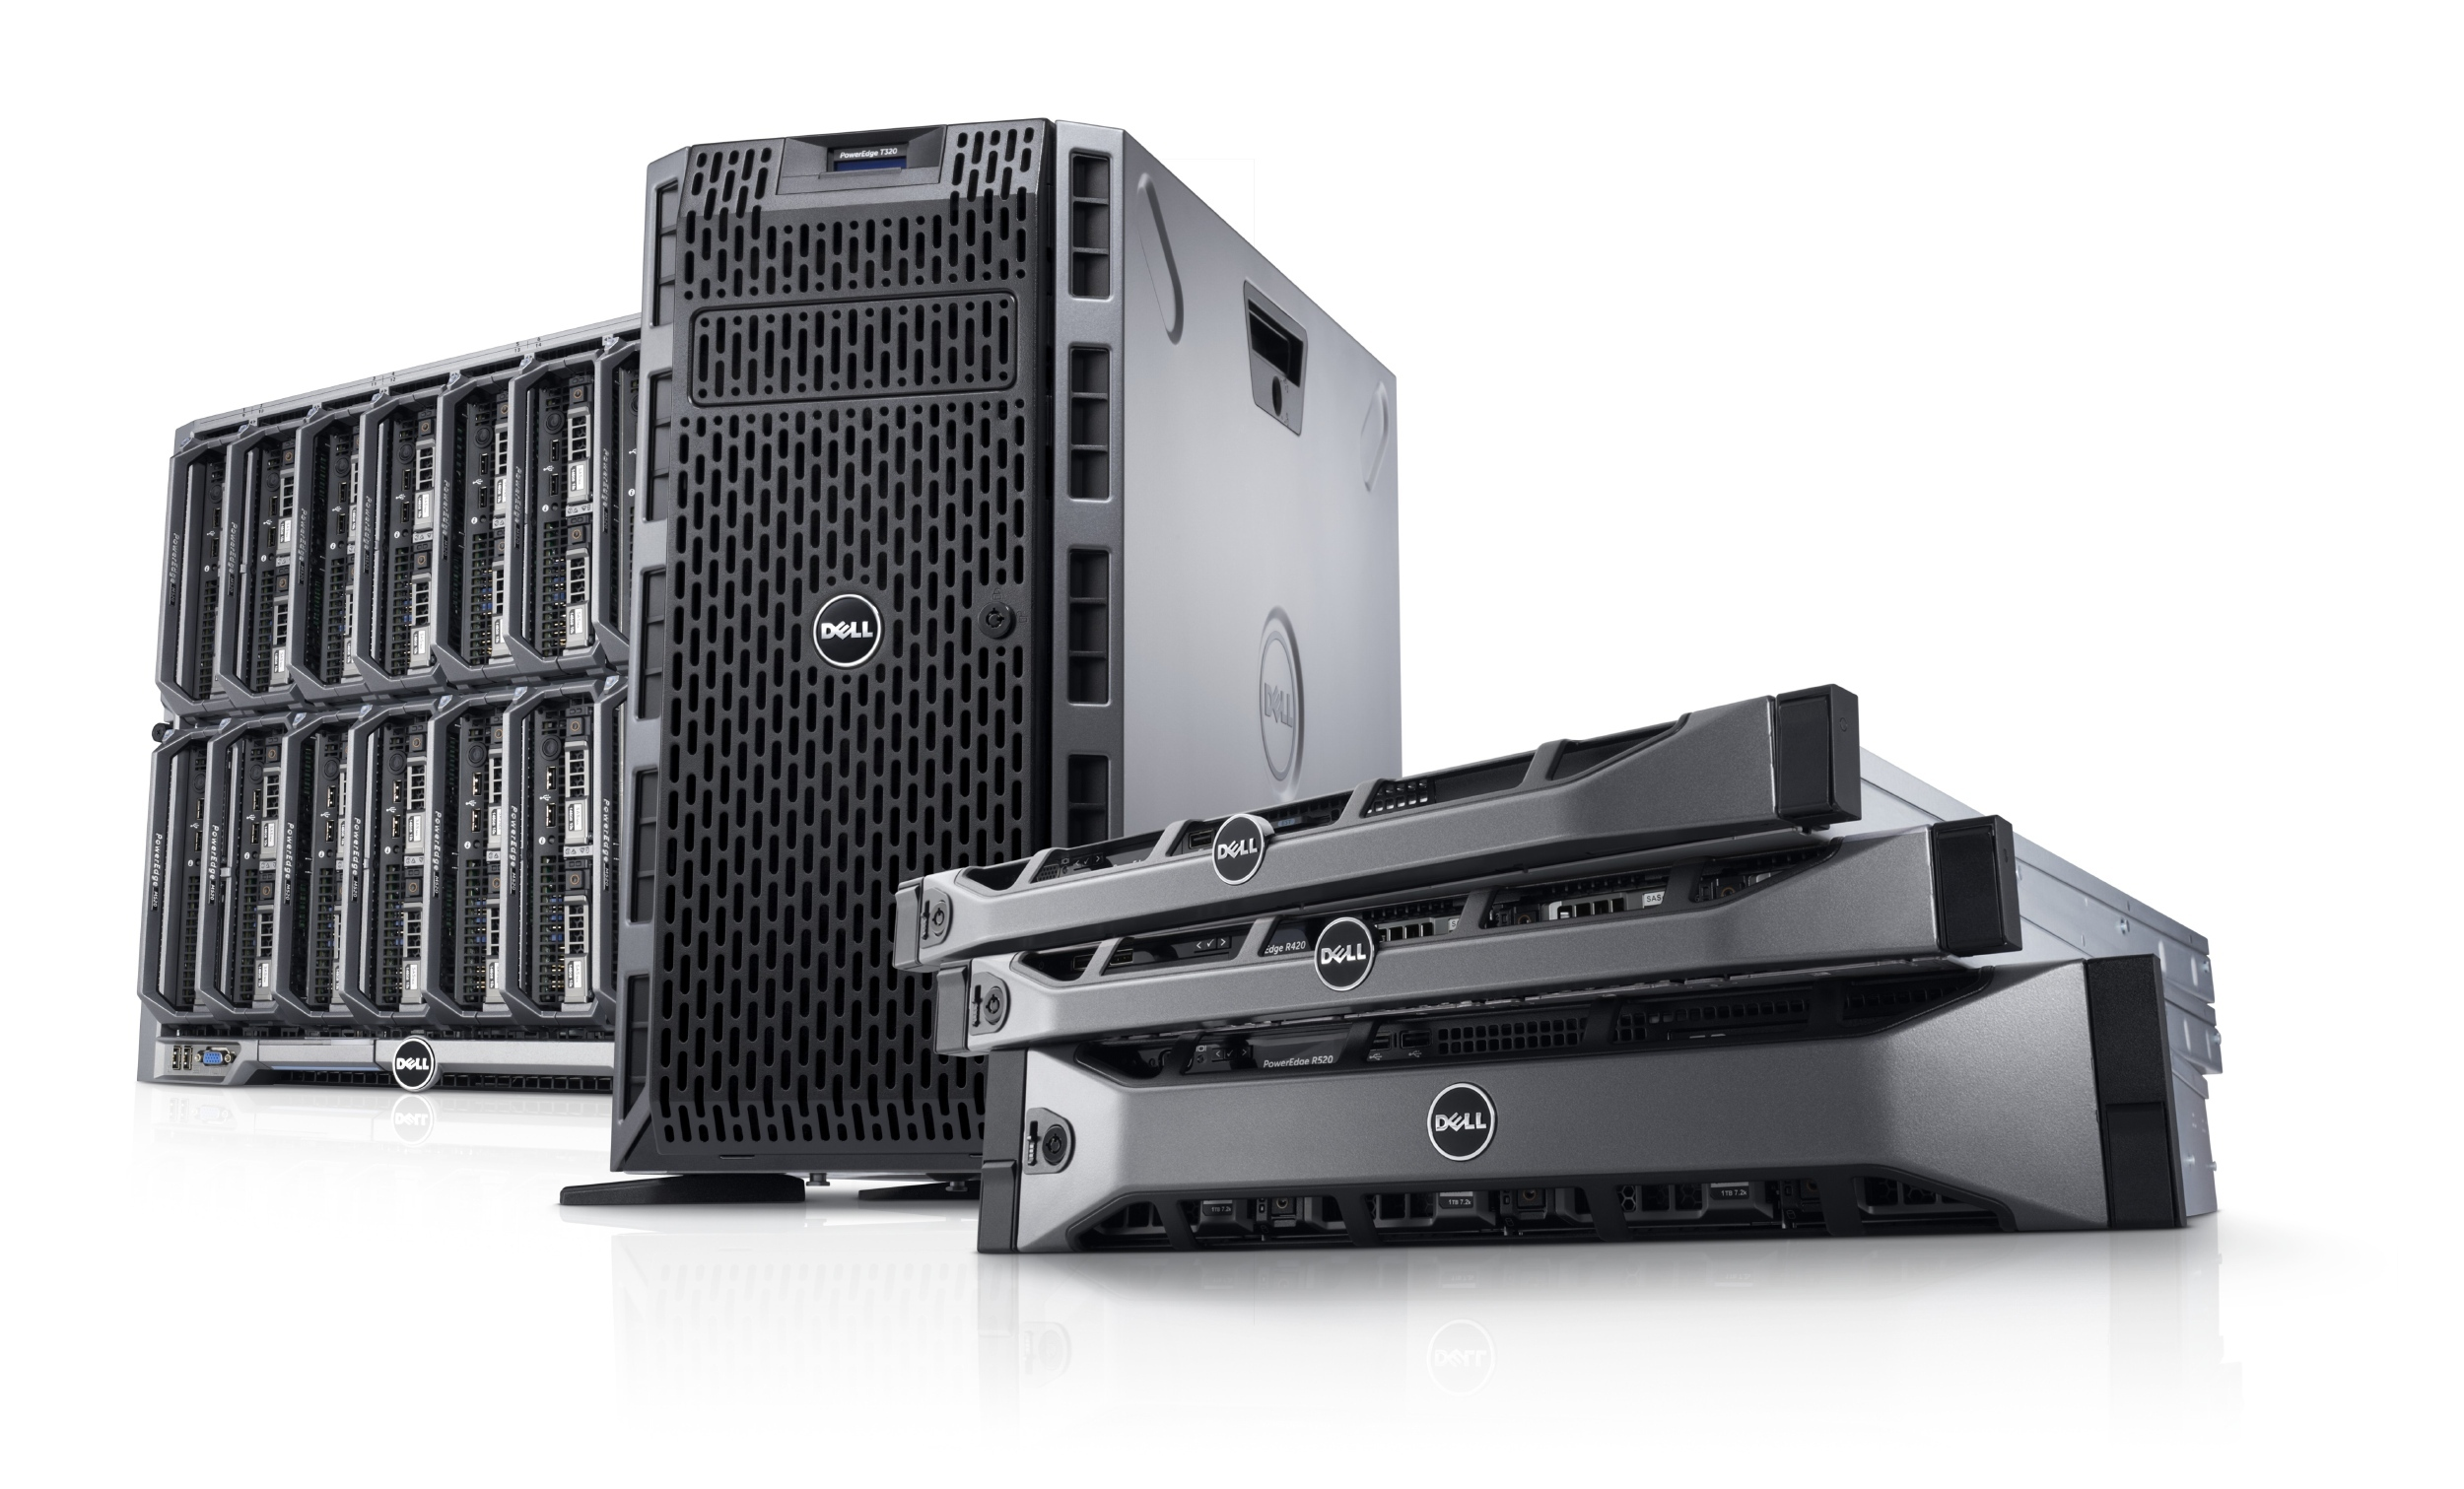 Dell PowerEdge 12G family image, featuring PowerEdge M520 blade servers in a PowerEdge M1000e modular blade enclosure, a PowerEdge T320 tower server, and PowerEdge R320, R420, and R520 rack servers.